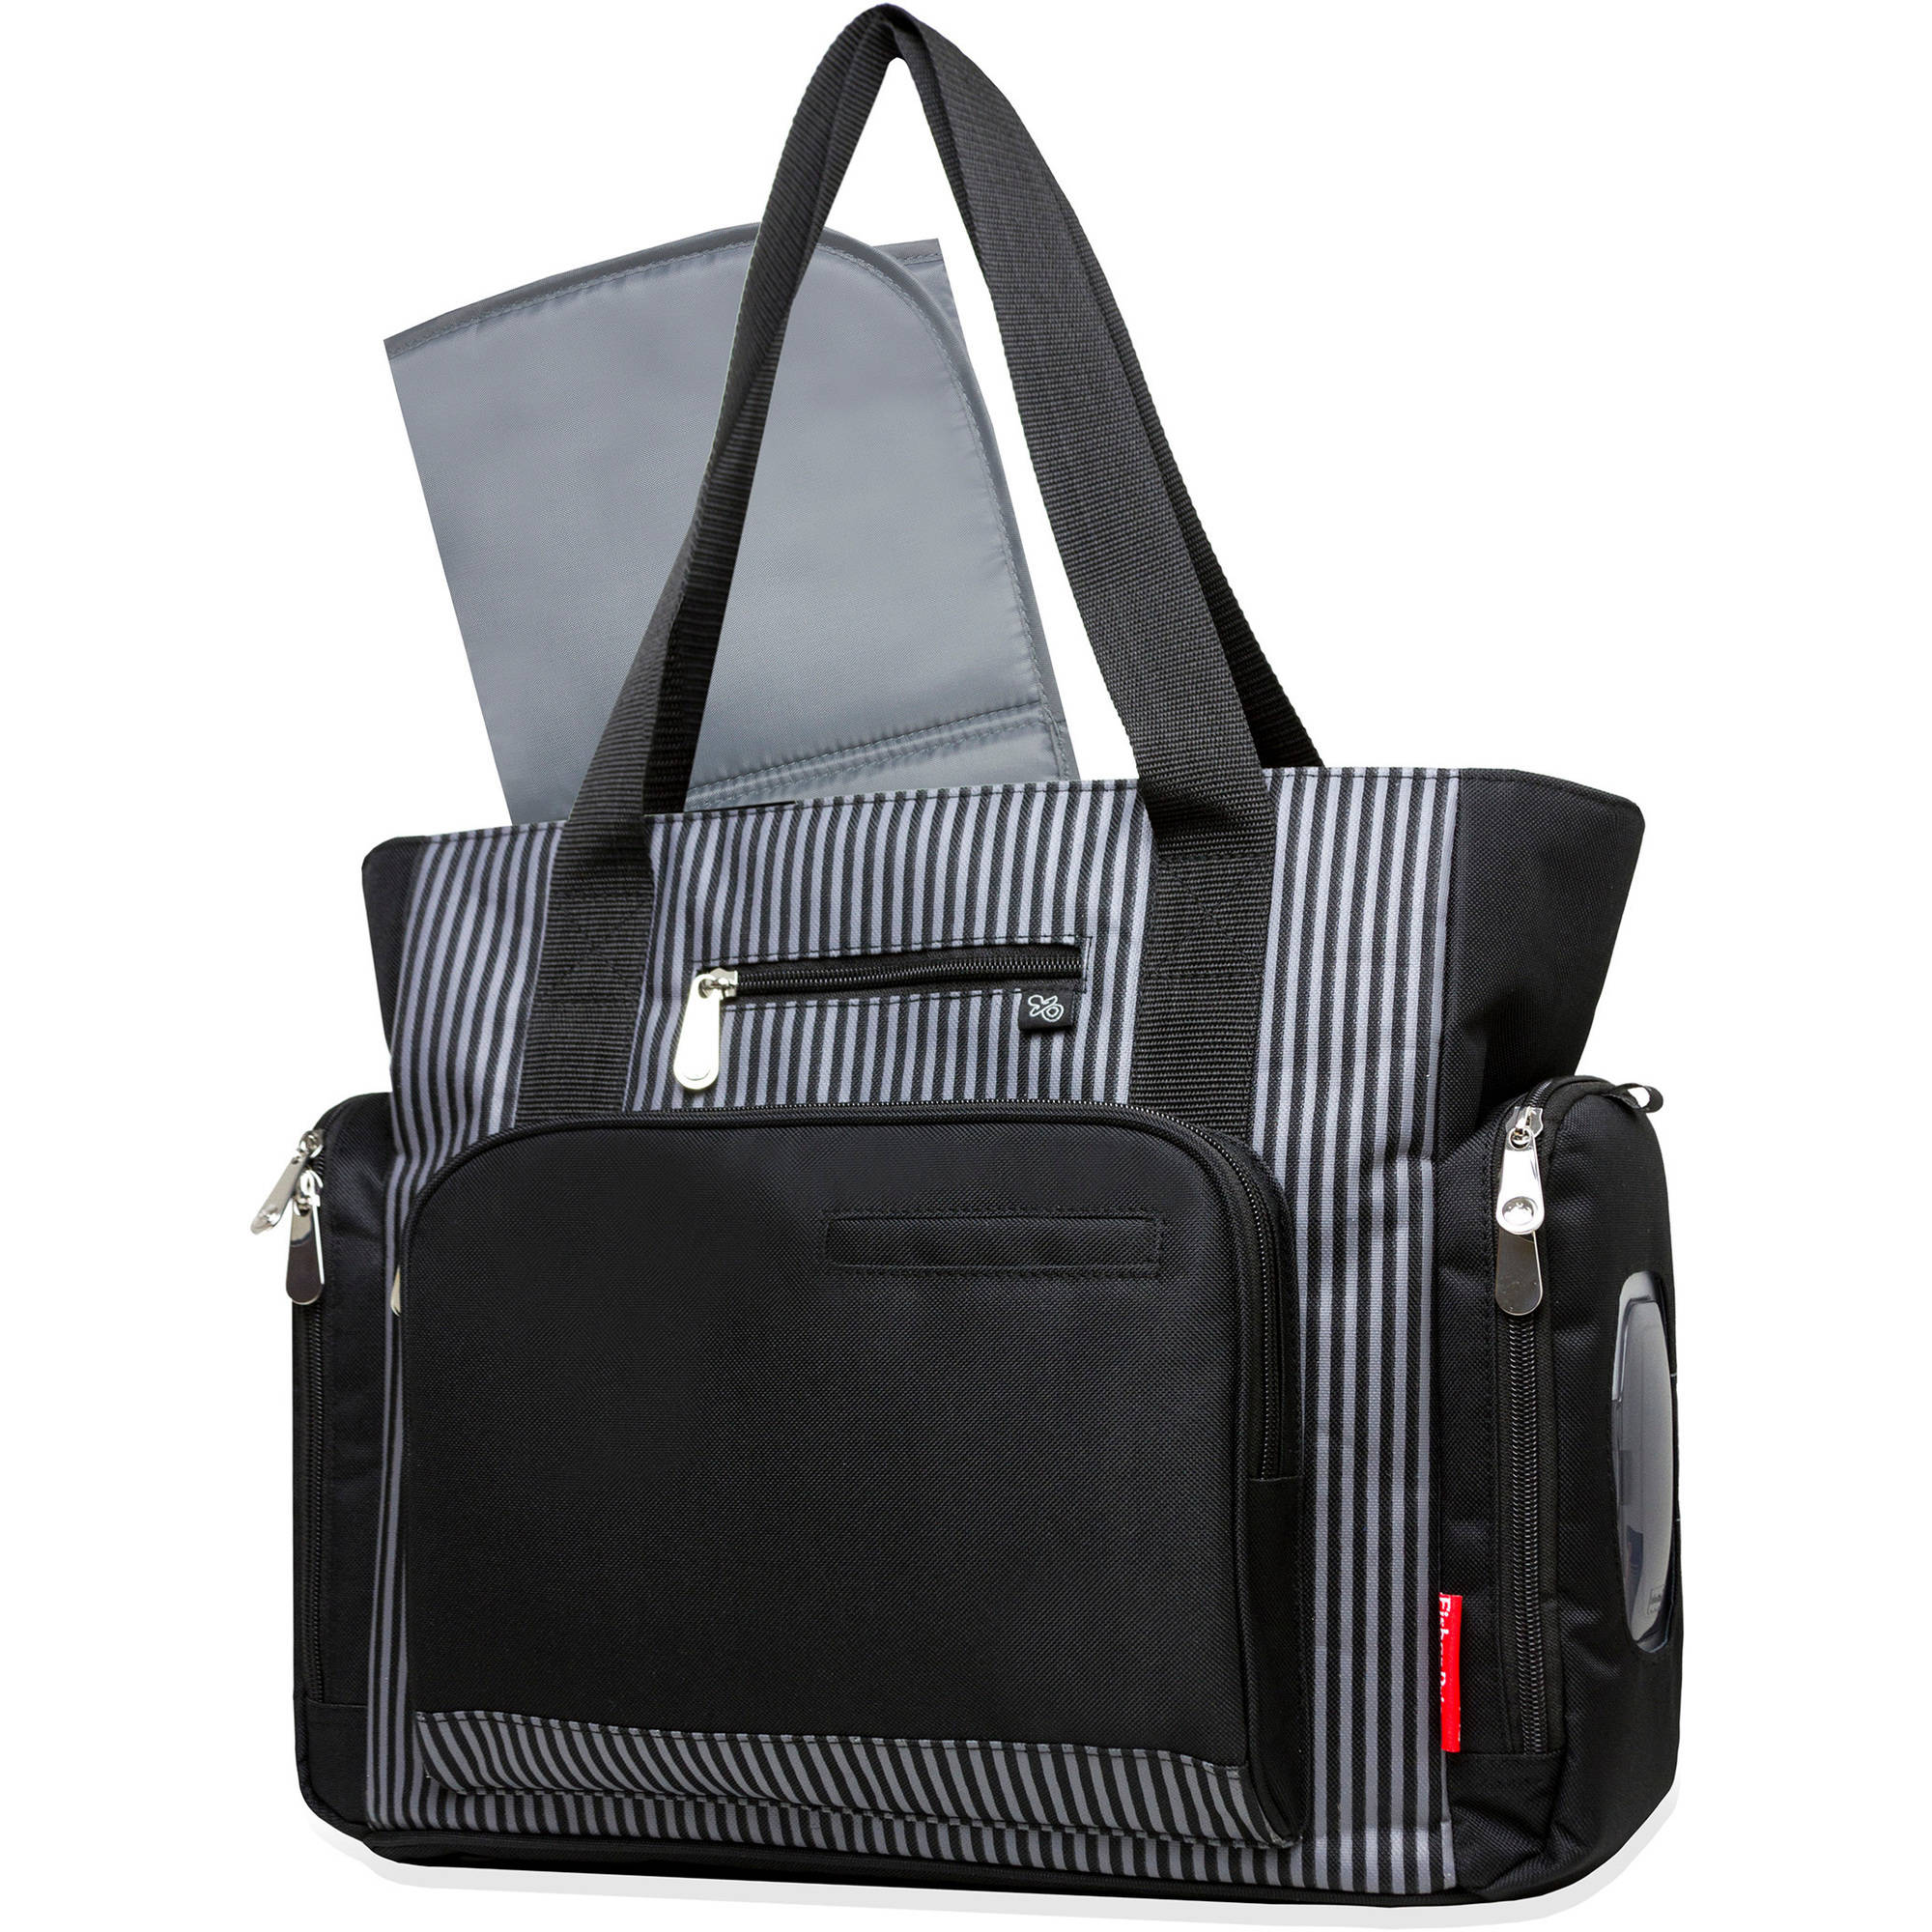 Fisher-Price Black Stripe Tote with Fastfinder Pocket System